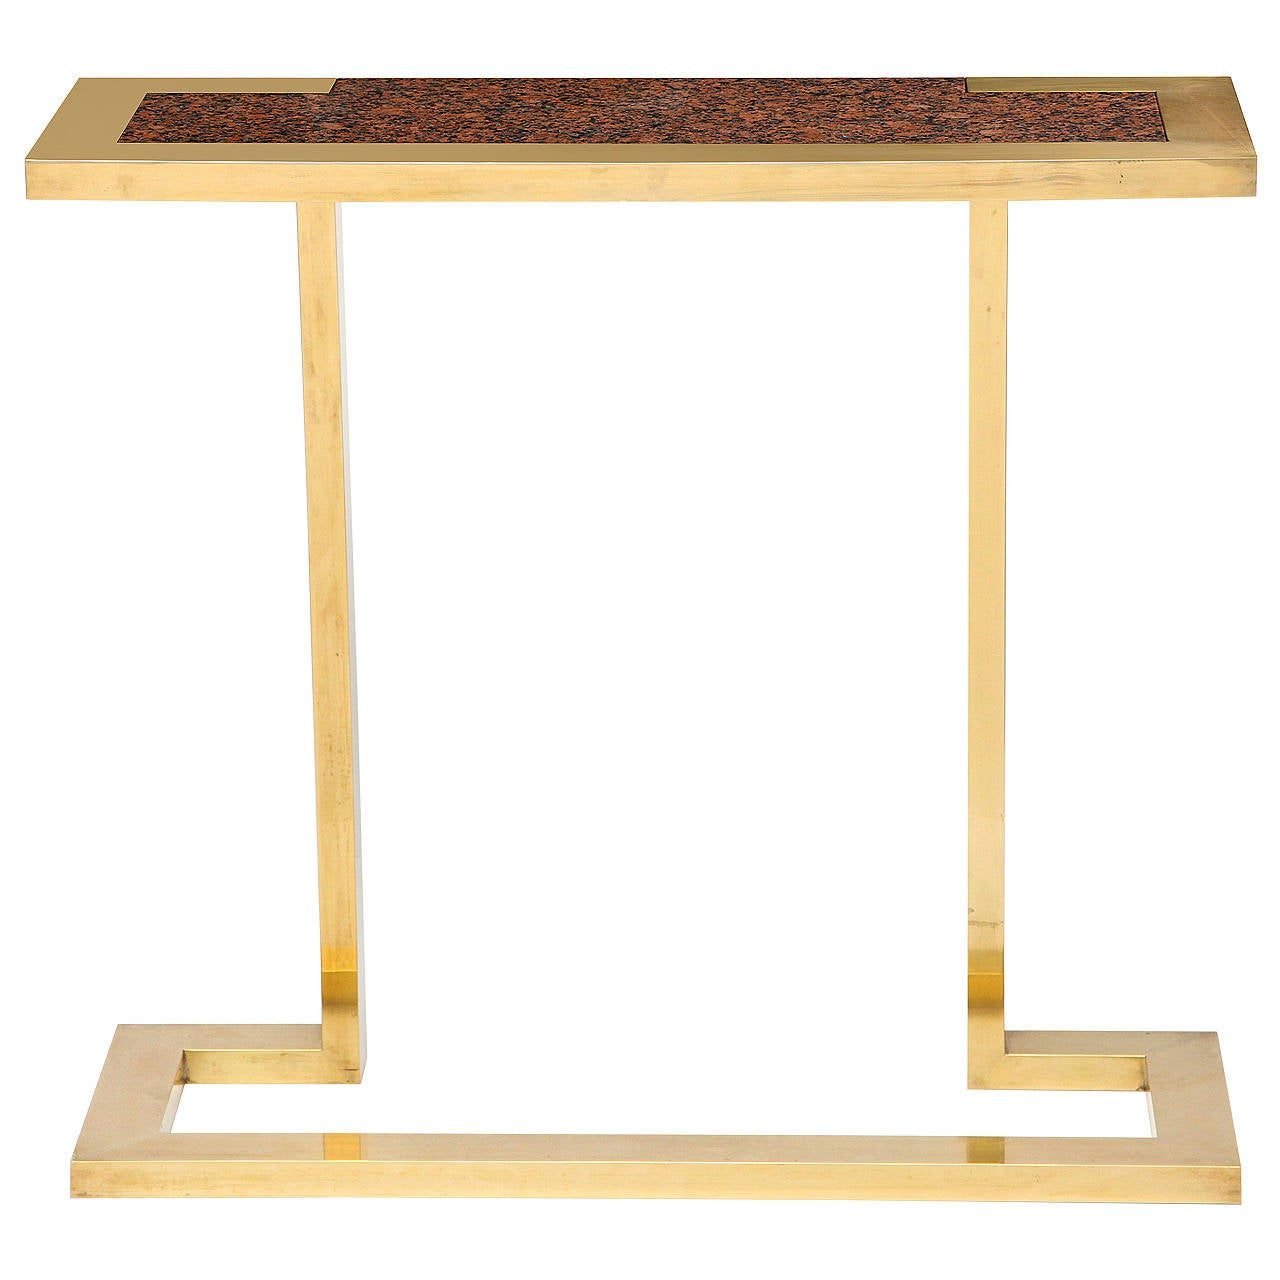 Nucci Valsecchi, Brass and Granite Console, Italy, C. 1970 For Sale